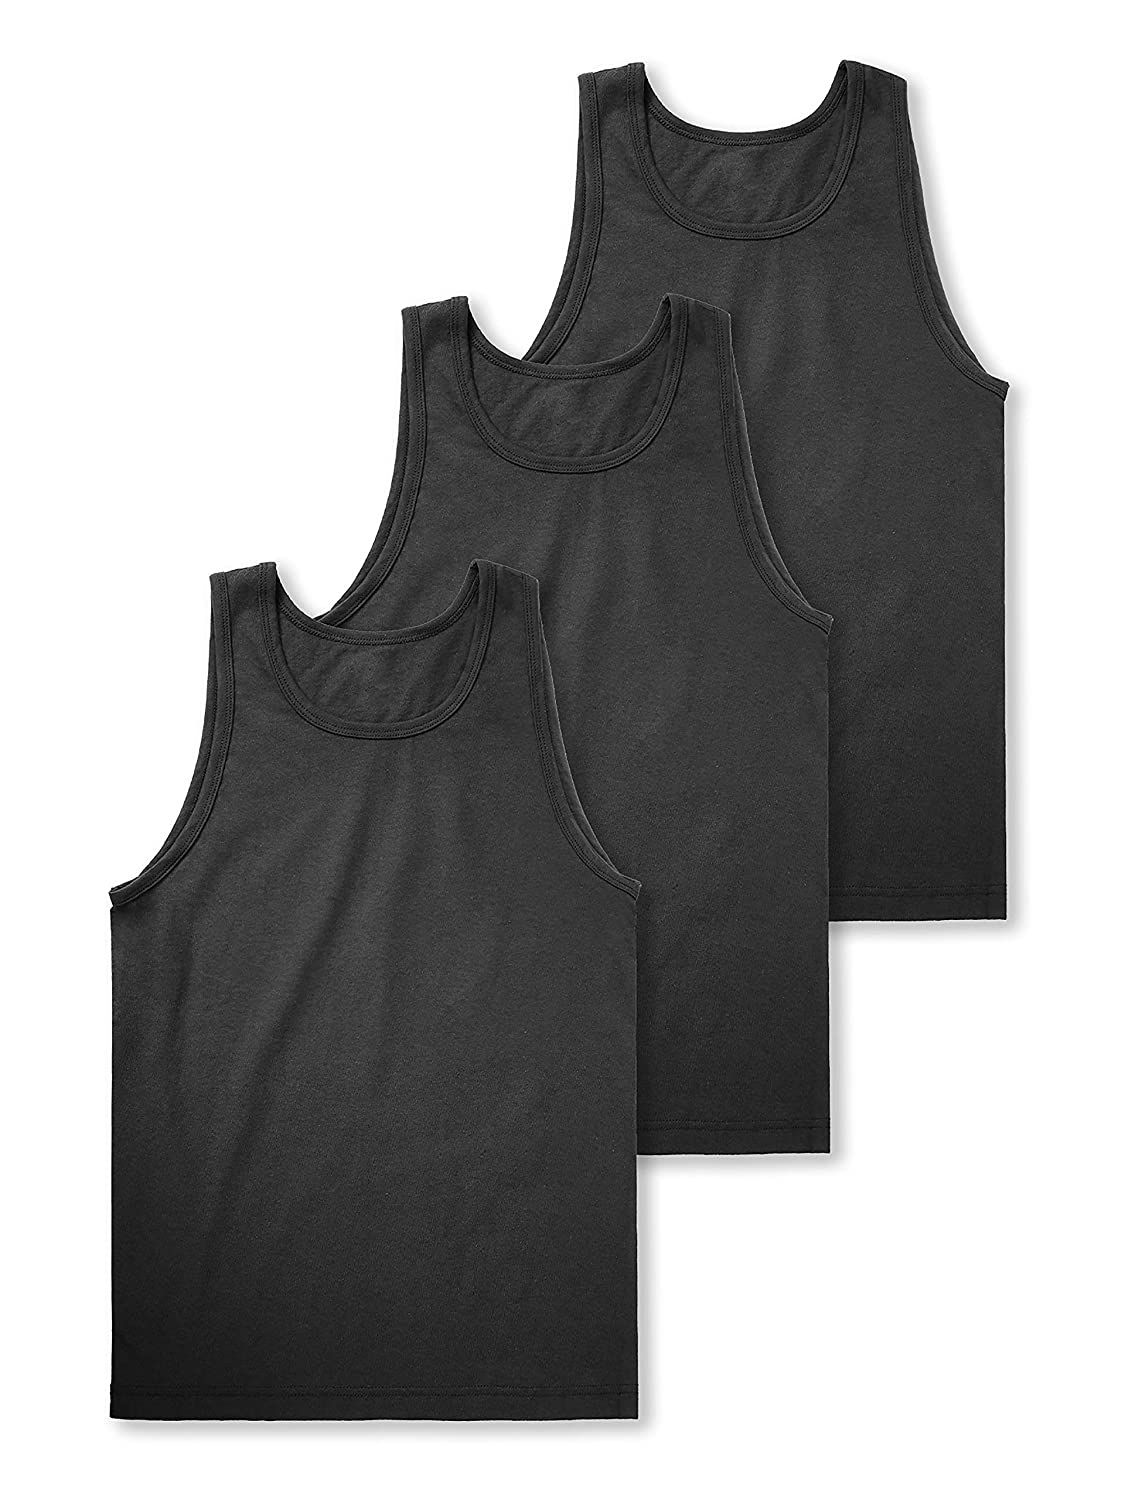 Hat and Beyond Mens Tank Top Muscle Fit Active Exercise Sleeveless Shirt